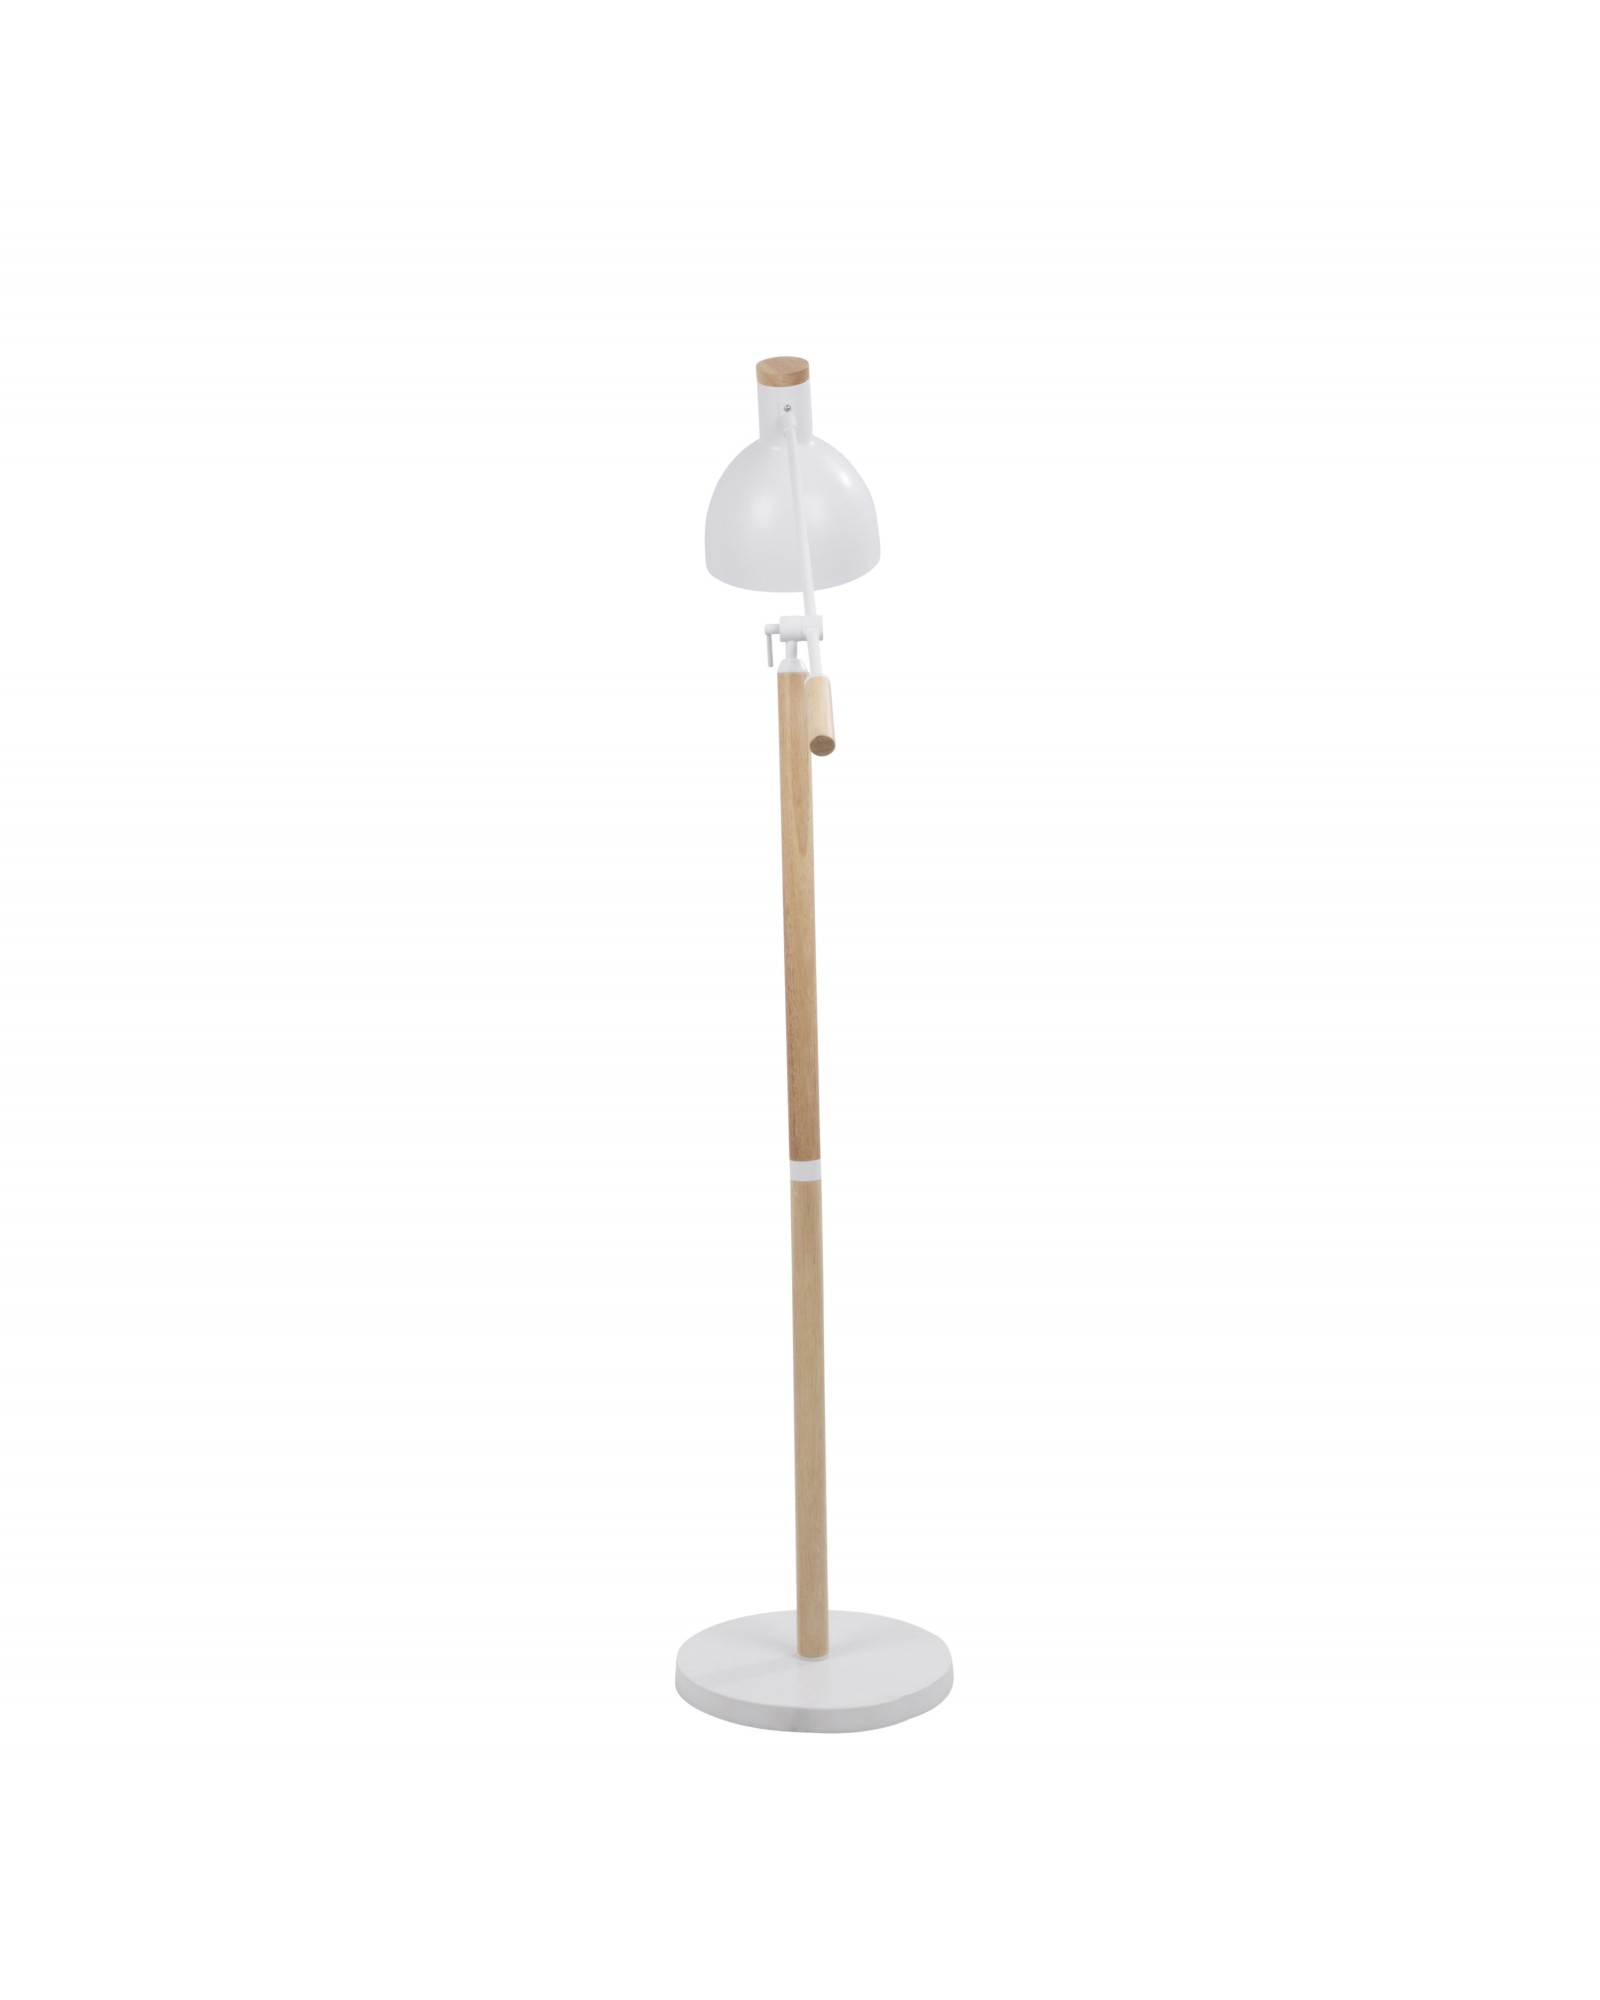 Pix Contemporary Floor Lamp in Natural Wood and Matte White